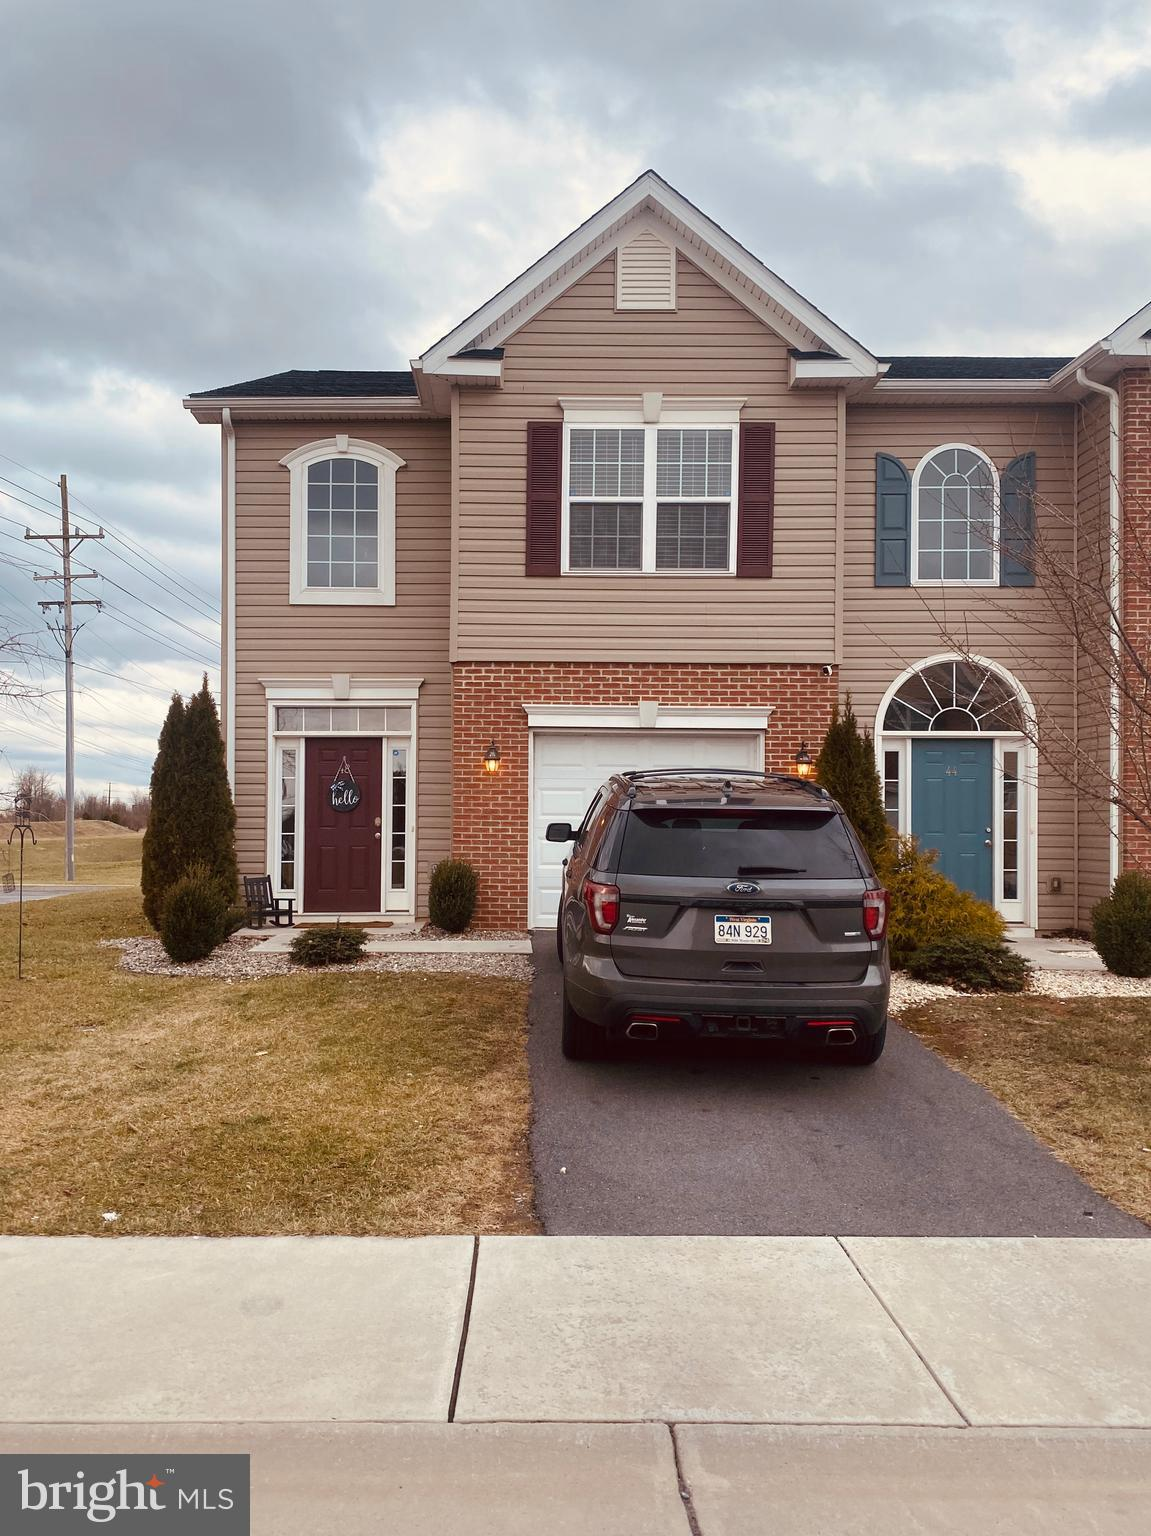 4 year young- 3 bedroom, 2.5 bath end unit Carriage house with 1 car garage,   Gracious 2 story foye